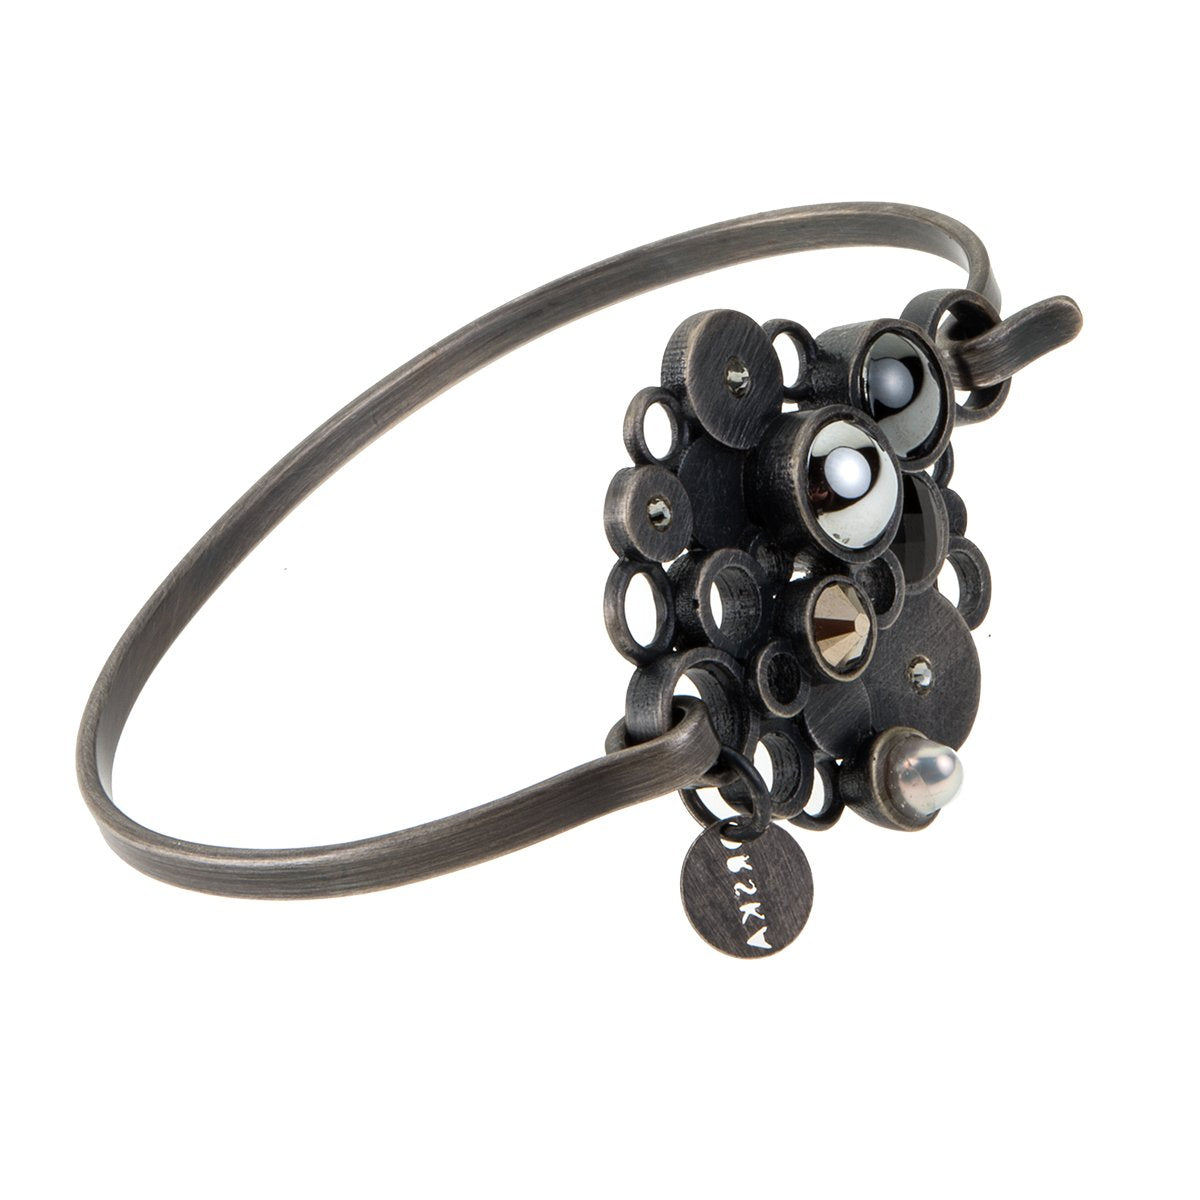 Bracelet from Soda collection - SA38-2